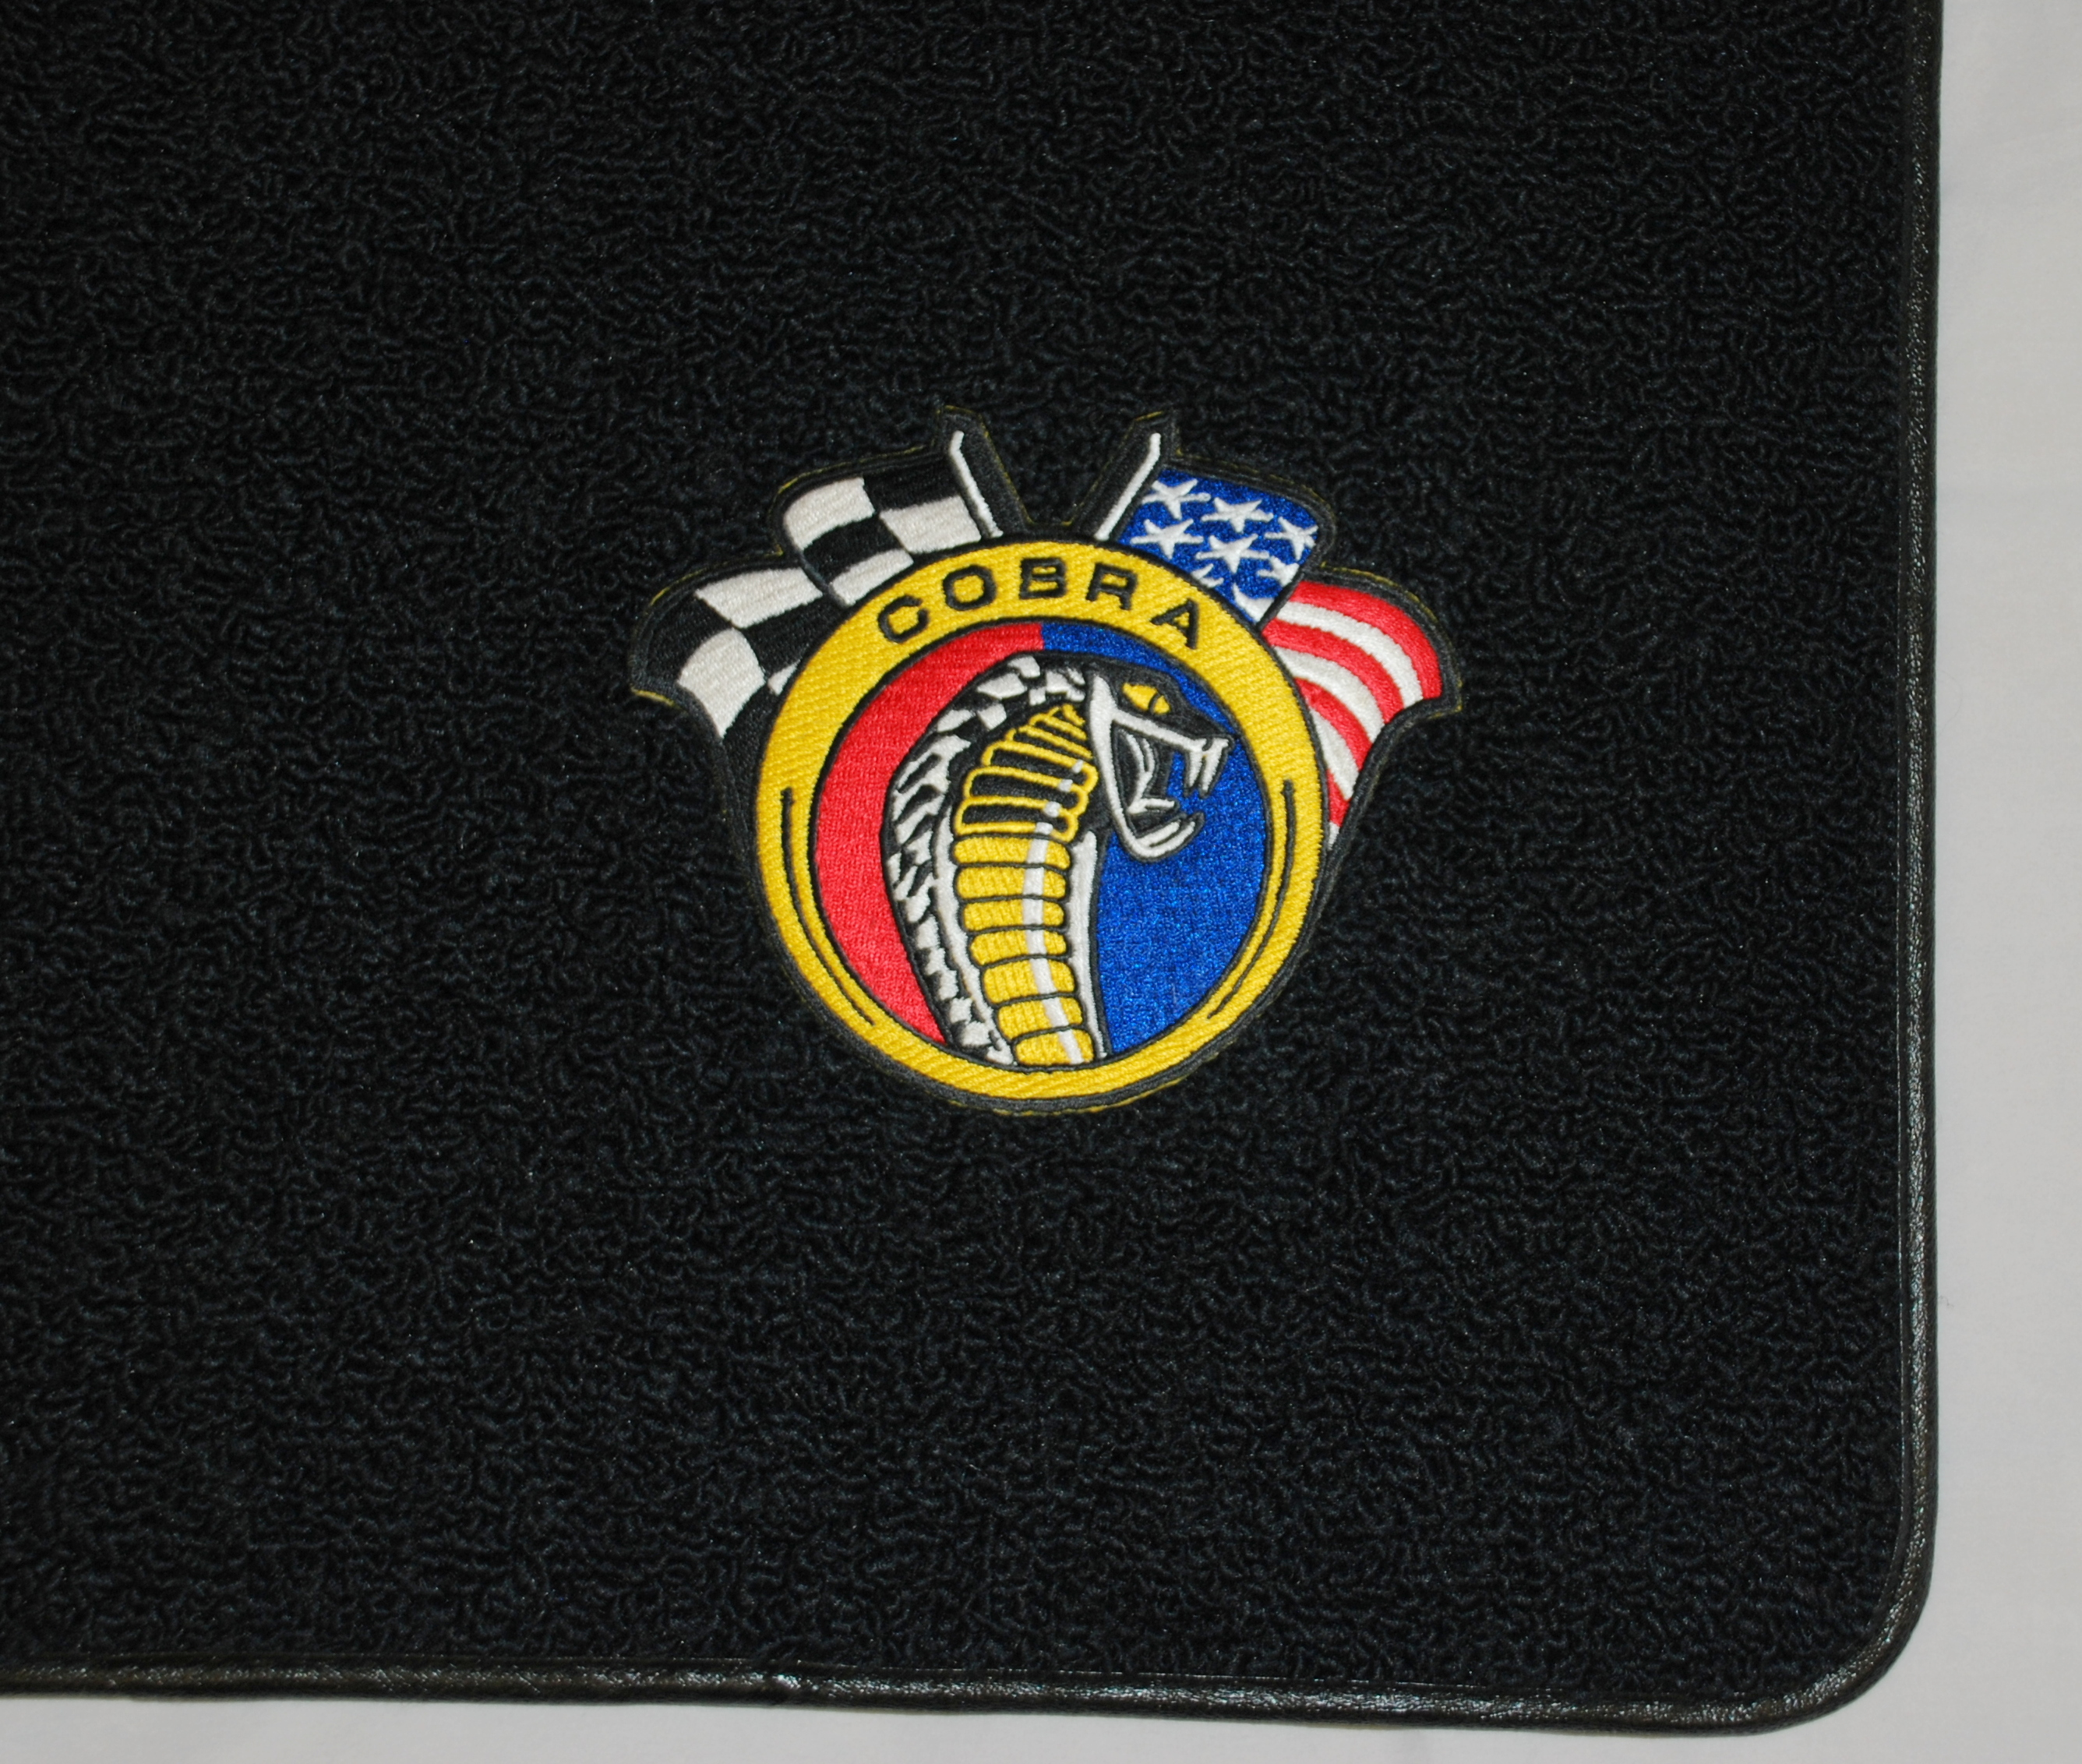 Rubber floor mats with mustang logo - Click To Enlarge